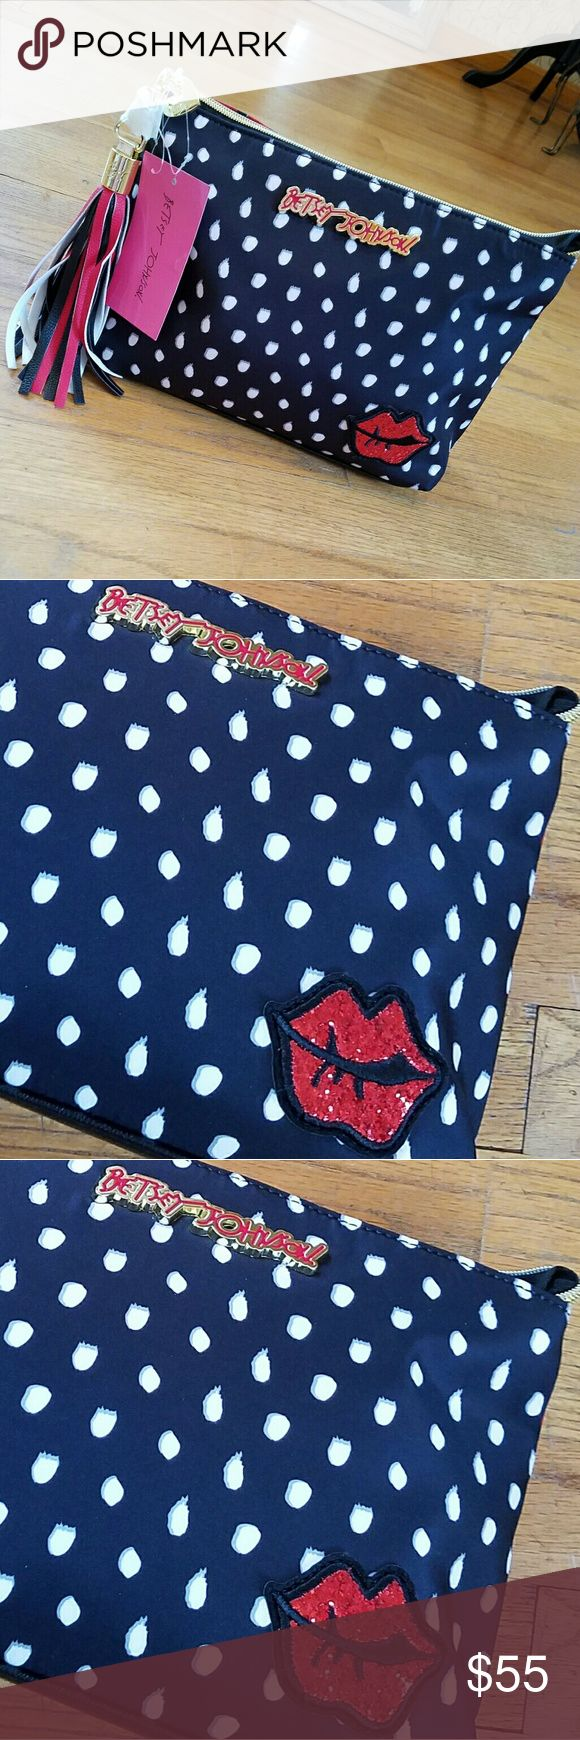 💋NWT-BETSEY JOHNSON KISS COSMETIC BAG! 💋NWT-BETSEY JOHNSON KISS COSMETIC BAG! SUPER CUTE BAG WITH GREAT LINING INSIDE LOTS OF ROOM INSIDE WITH POCKETS AND ZIPPER. DETACHABLE TASSEL AND A GREAT DESIGN!  SUCH A BEAUTIFUL MAKE UP BAG YOU WILL LOVE IT I ABSOLUTELY LOVE MINE😍😍  SIZE:   🌹NWT-BRAND NEW WITH TAGS 🌹100% AUTHENTIC 🌹SAME DAY SHIPPING 🌹OFFERS ACCEPTED THROUGH THE OFFER BUTTON 🌹NO TRADES  🚨CLOSET RULES POSTED PLEASE READ AND FOLLOW NO RUDE COMMENTS! PLEASE BE RESPECTFUL TOWARDS…